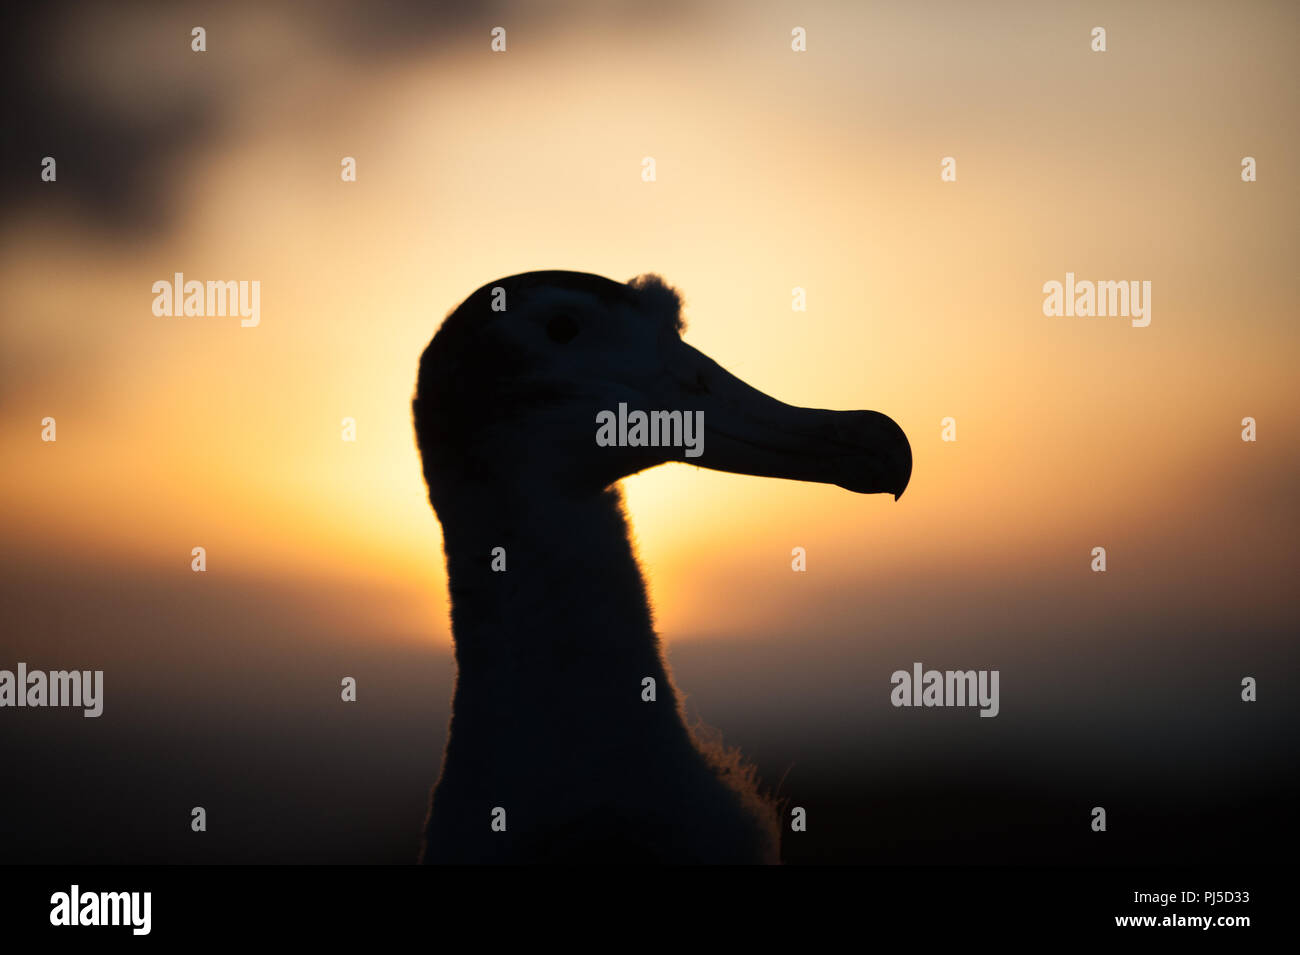 Wandering albatross (Diomedia exulans) chick silhouetted against the setting sun, Bird Island, South Georgia - Stock Image